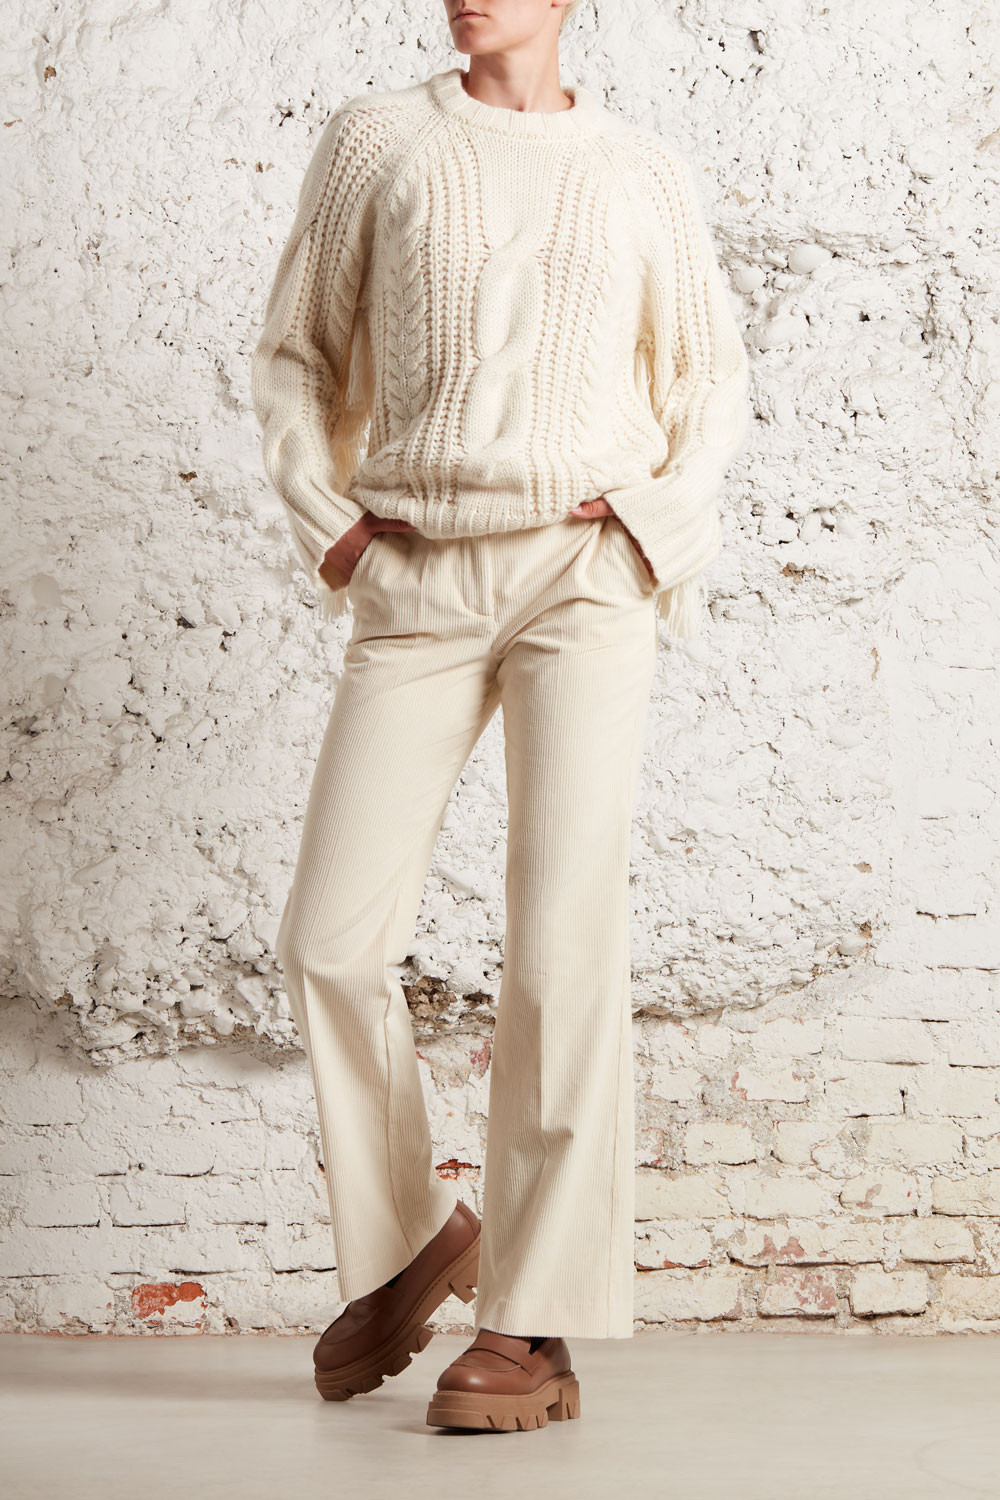 KNITWEAR WITH FRINGES - LIVIAD540565